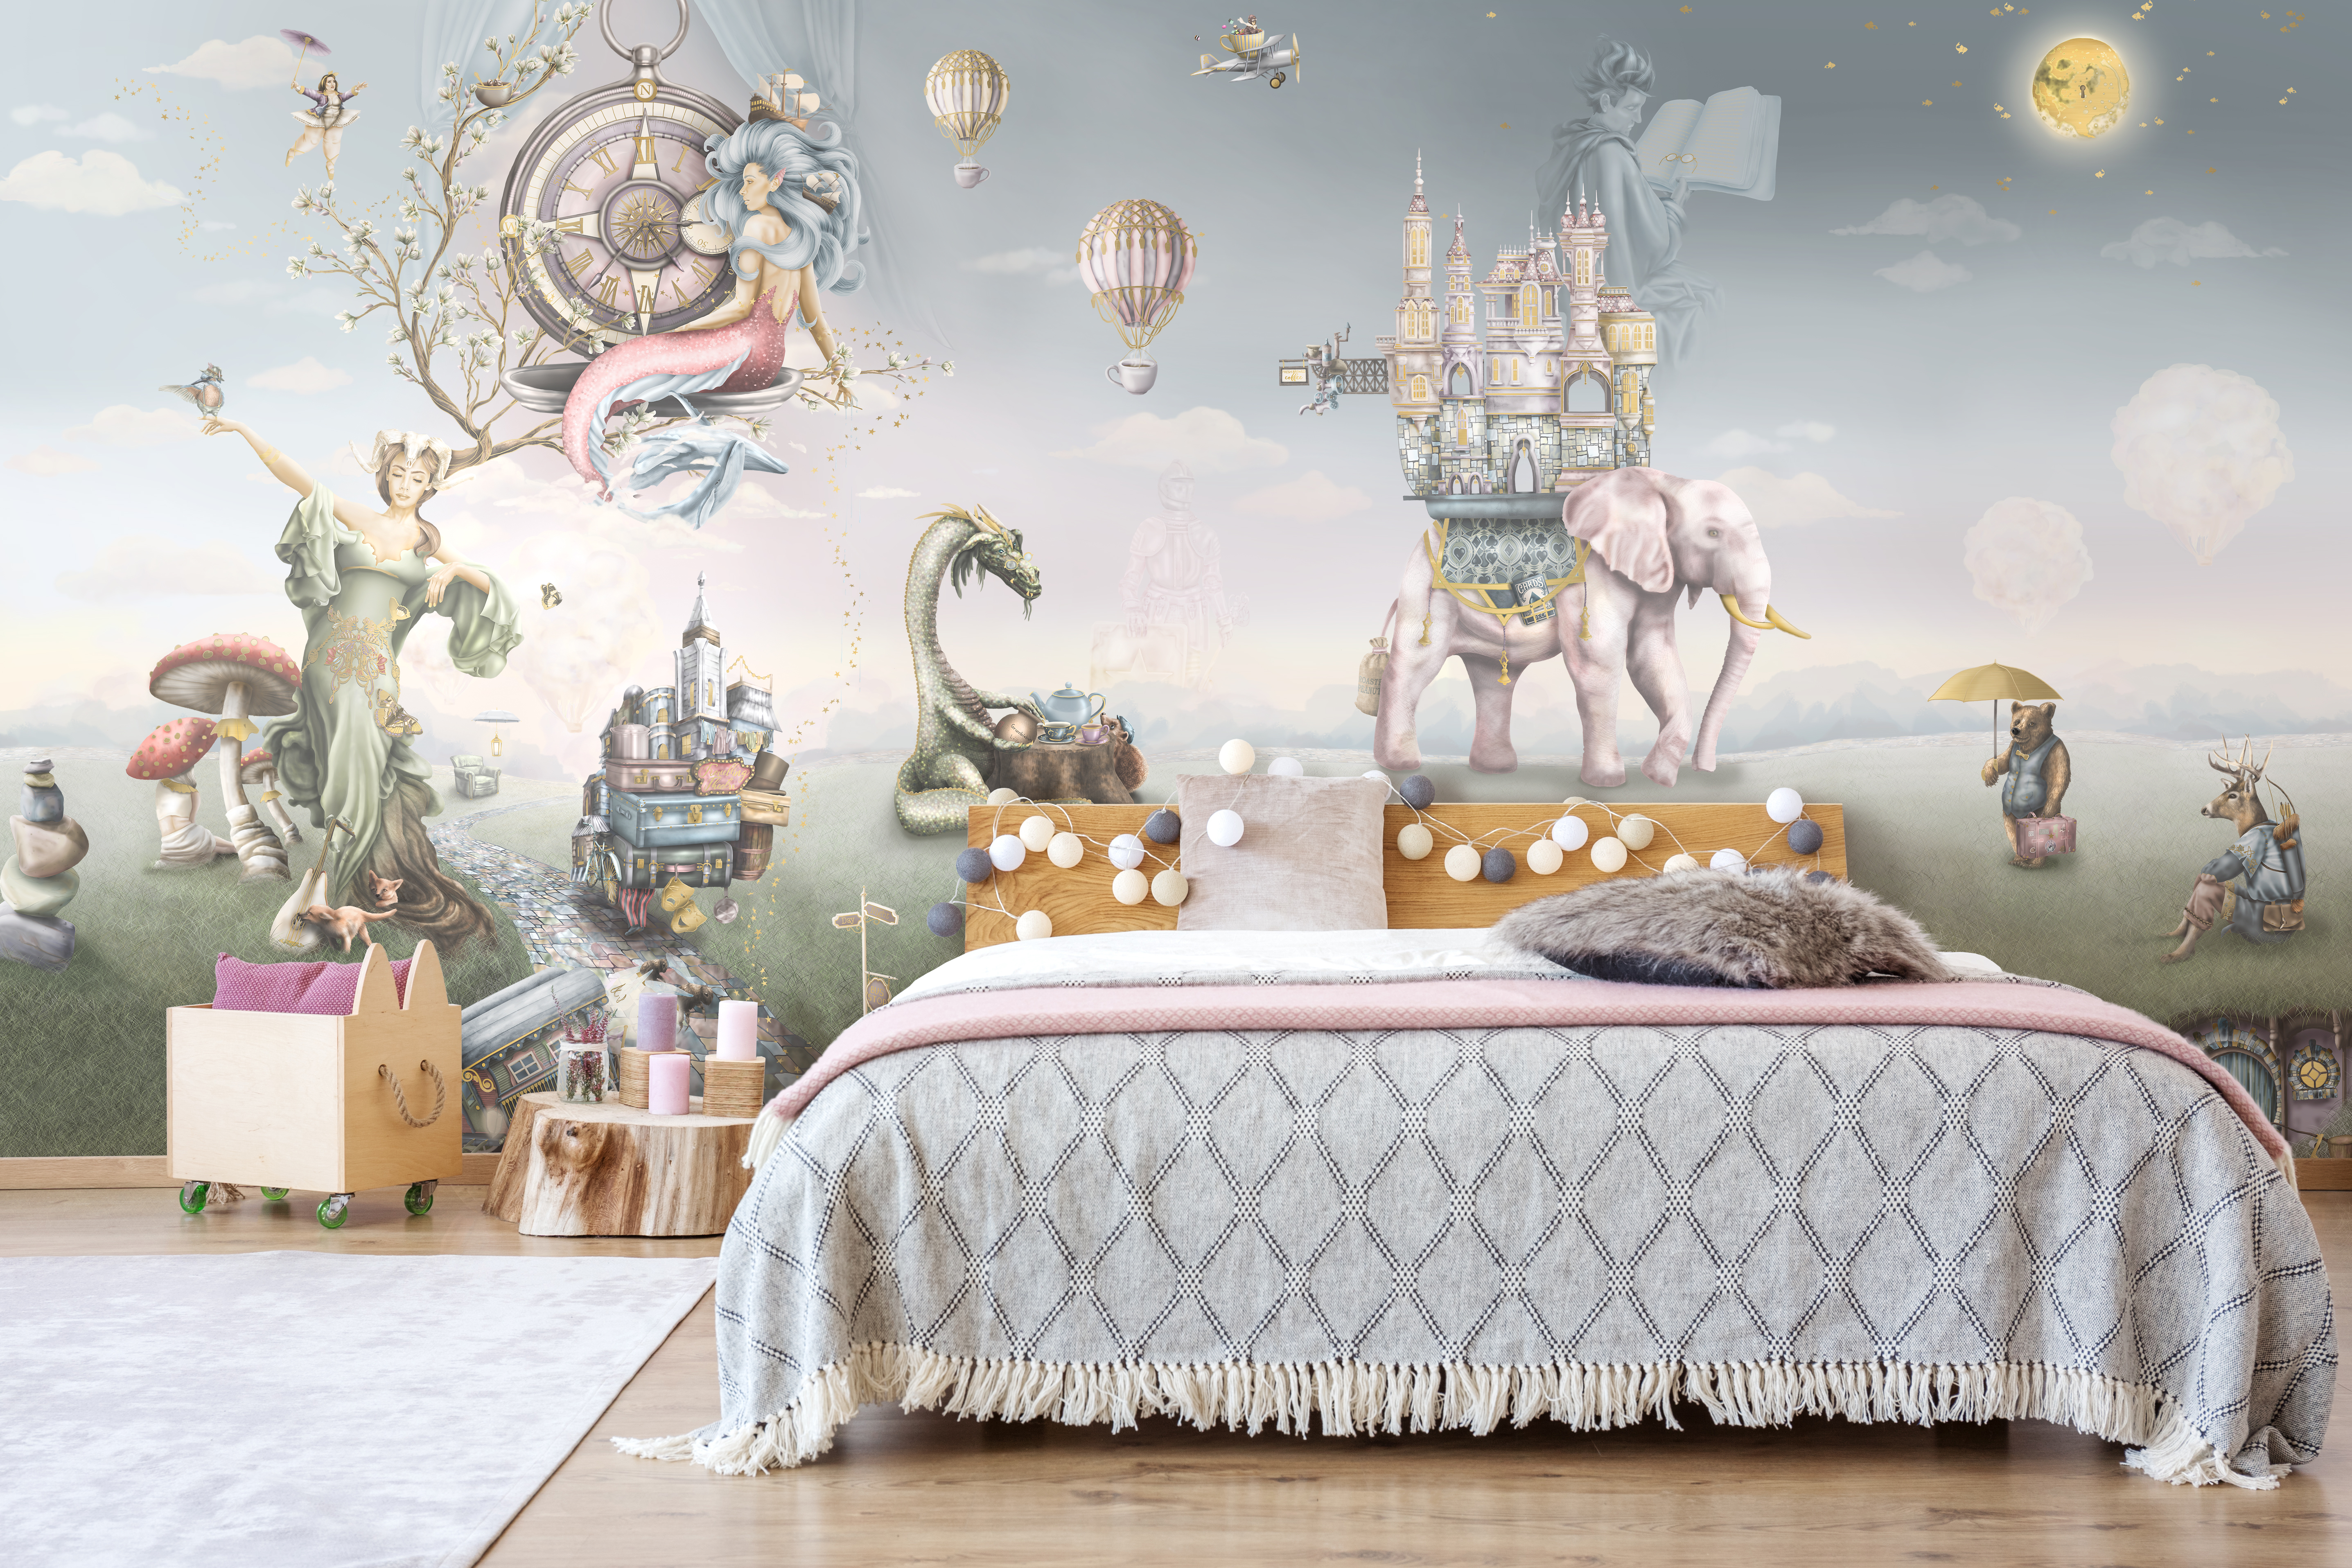 Girls Fairytale wallpaper design - featuring mermaids, mother nature, elephants, dragons, mushrooms princesses and more. Luxury custom wallpaper from sydney australia,